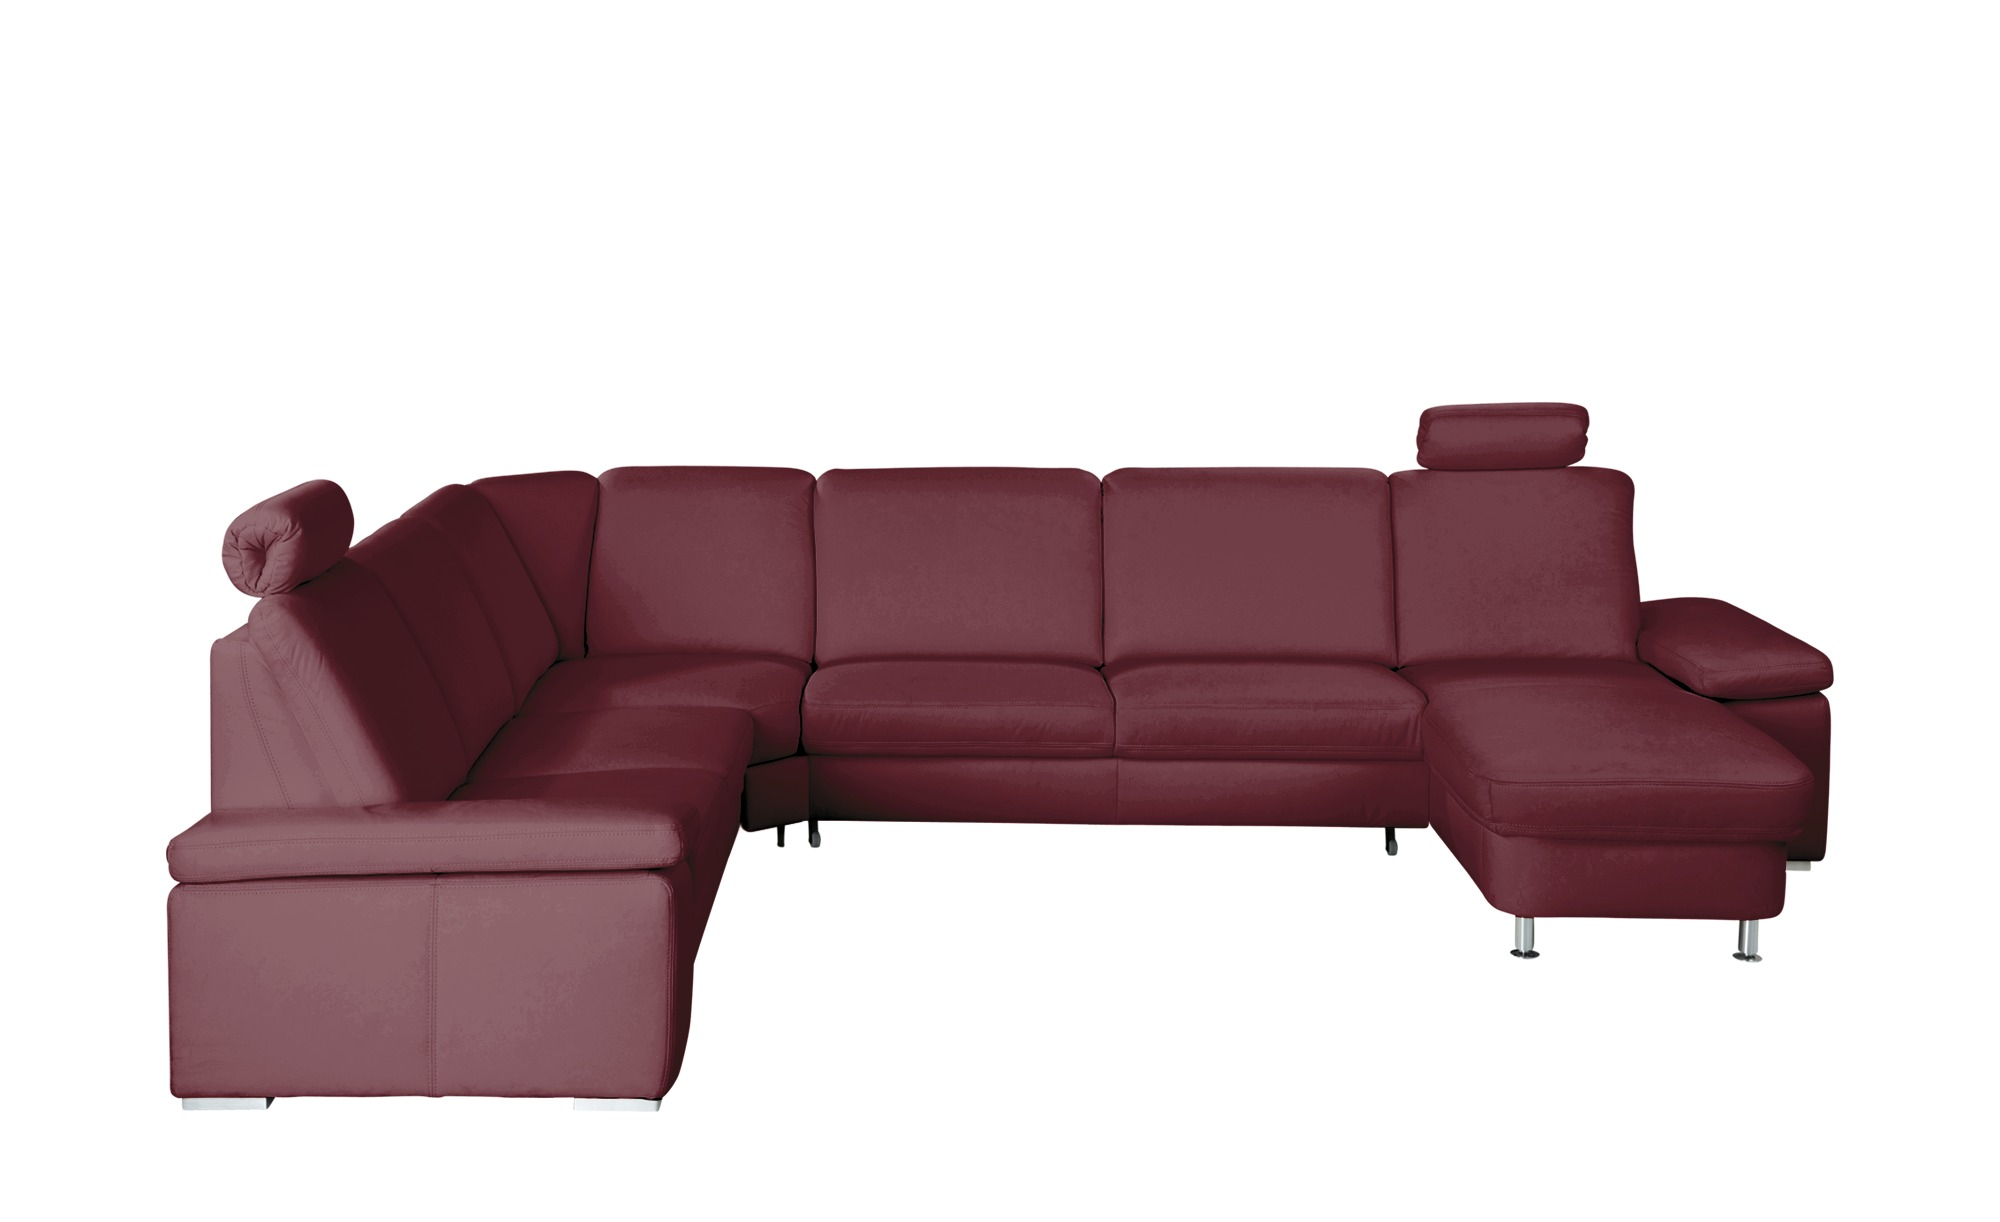 meinsofa elementgruppe leder wine elsa breite h he 91 cm rot online kaufen bei woonio. Black Bedroom Furniture Sets. Home Design Ideas